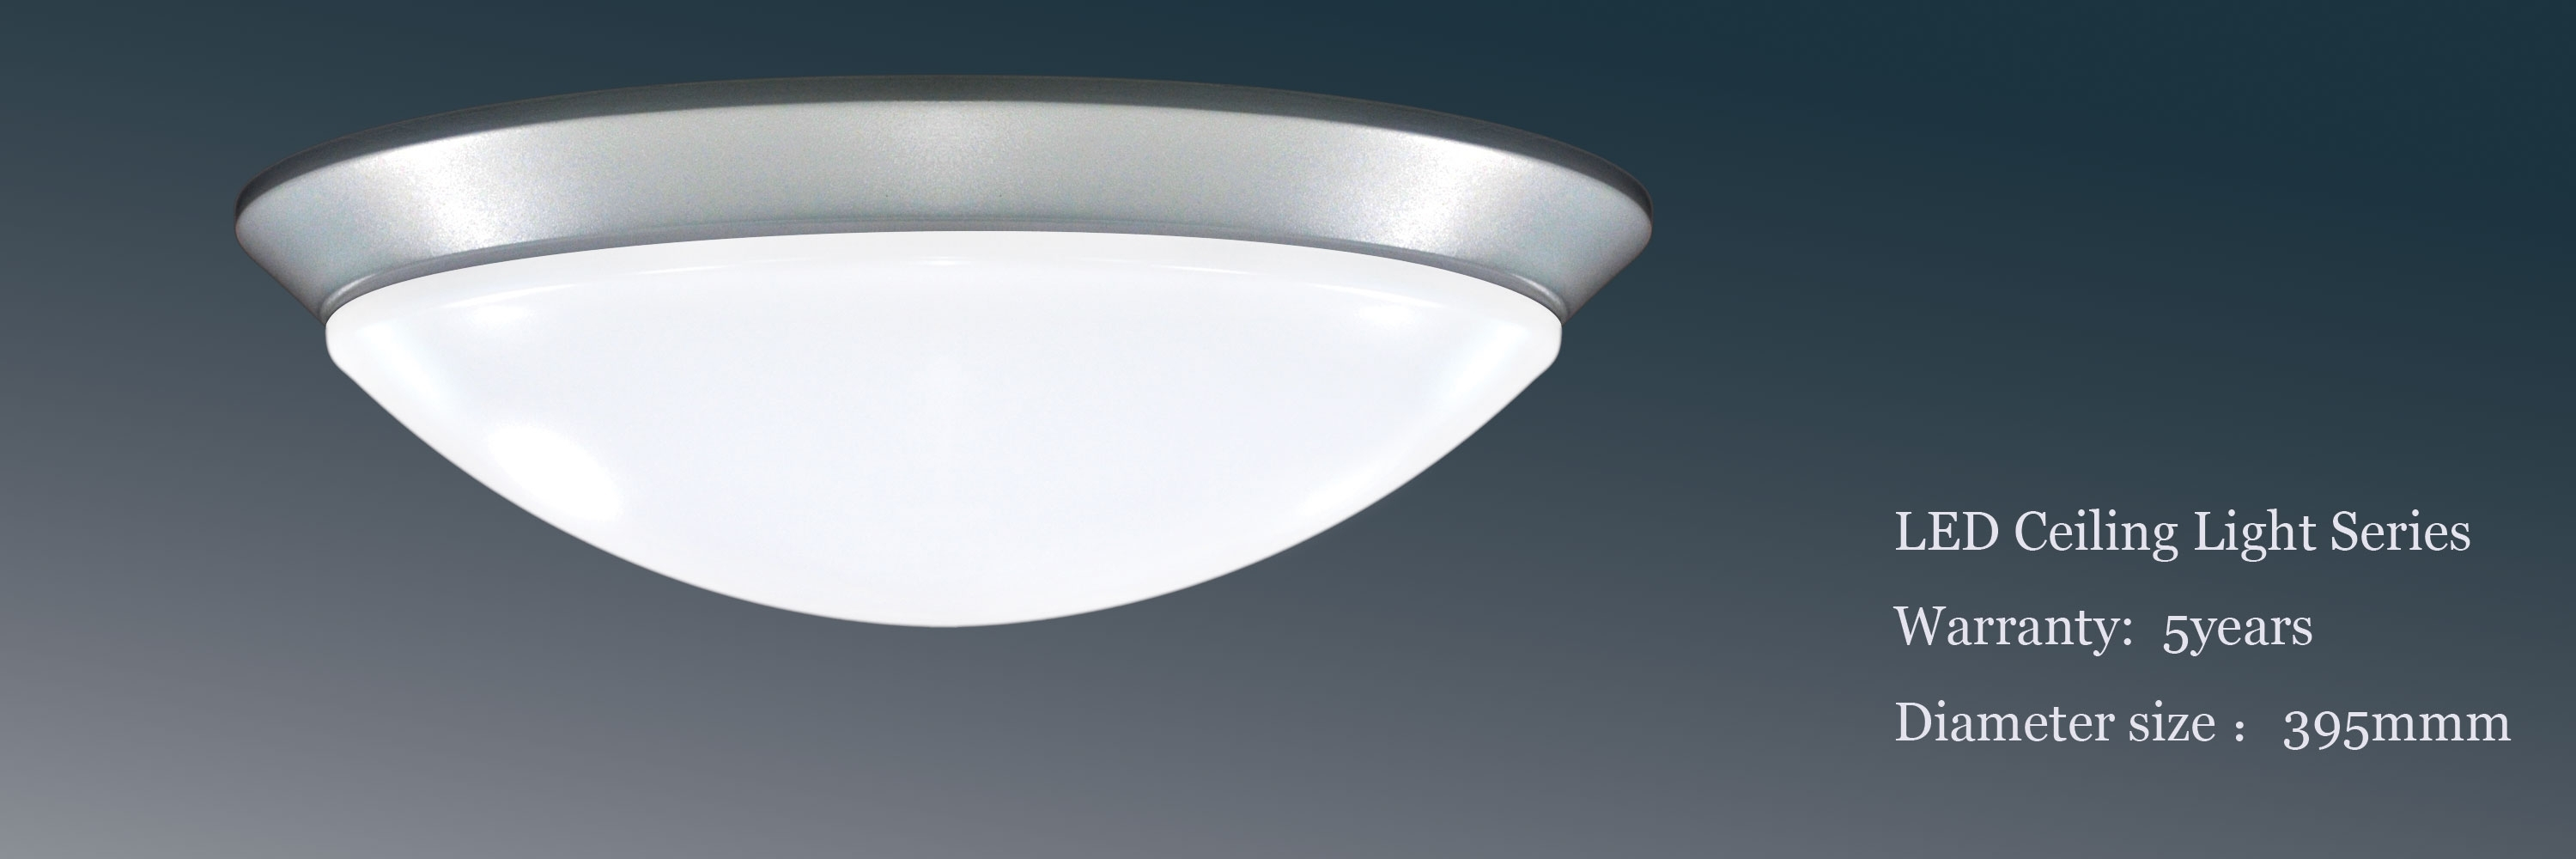 Decorating : Outdoor Ceiling Light For Boats Led 00599Wh Aaa World Regarding Outdoor Ceiling Led Lights (#2 of 15)